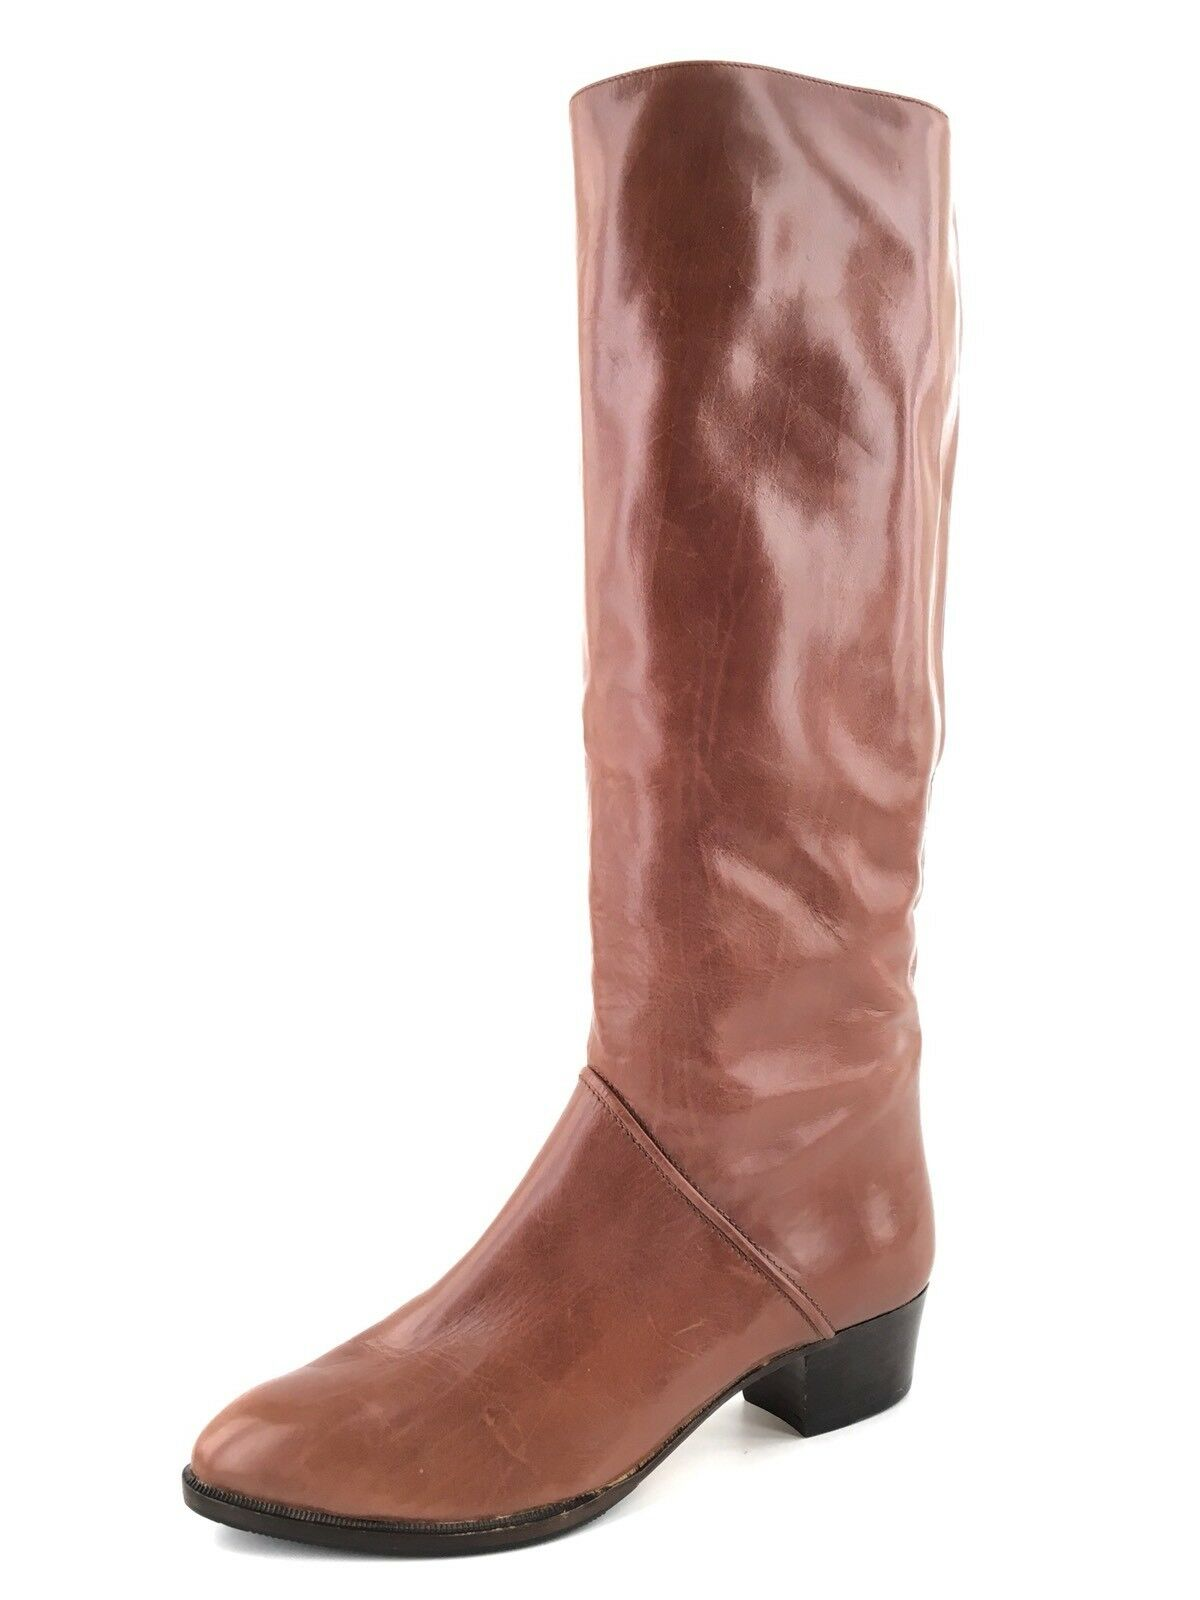 New Maserati Iguana Brown Leather Knee High Boots Women's Size 6 M